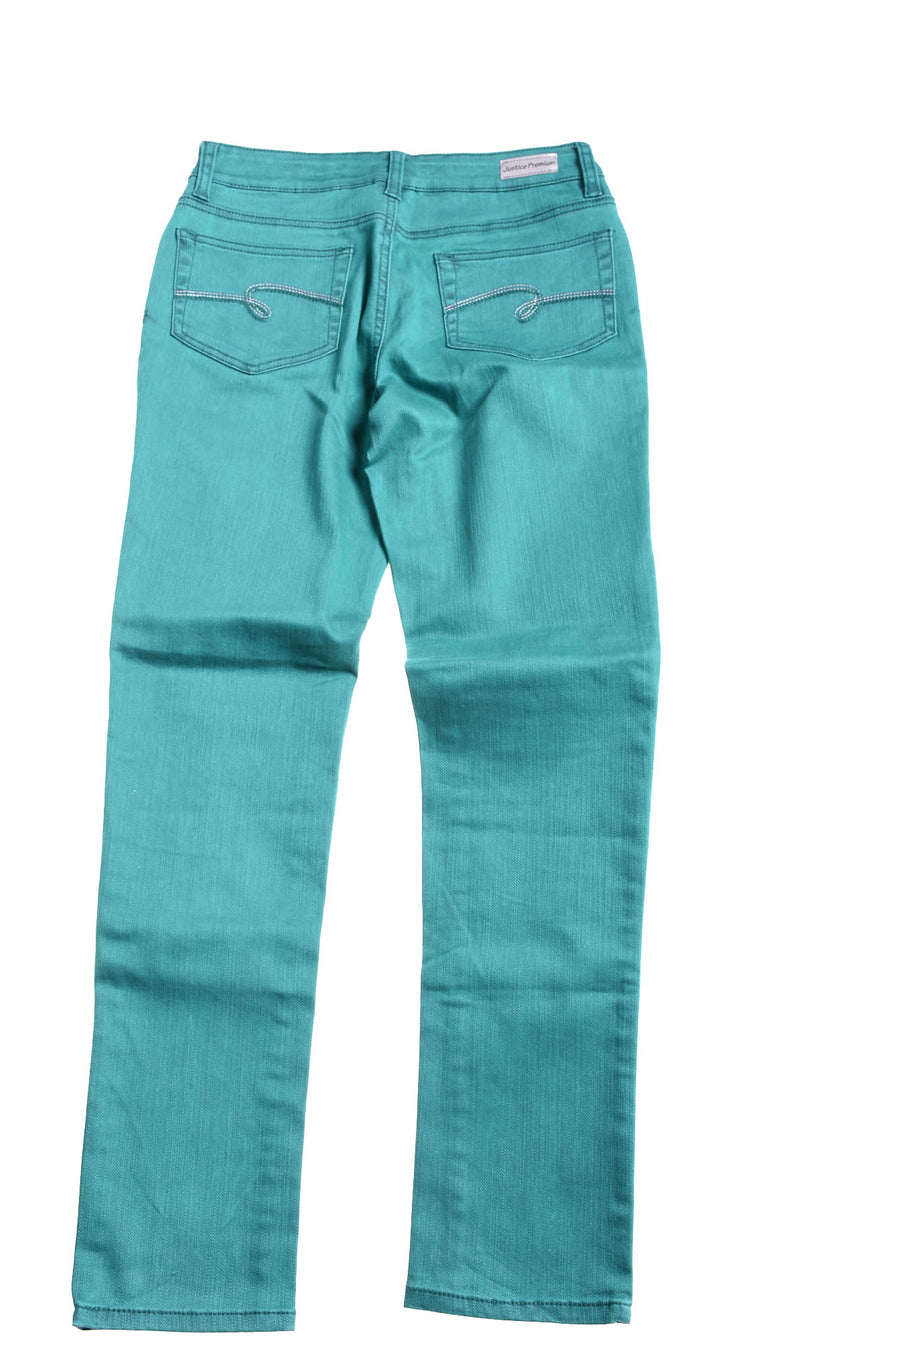 USED Justice Girl's Jeans 14.5 Blue